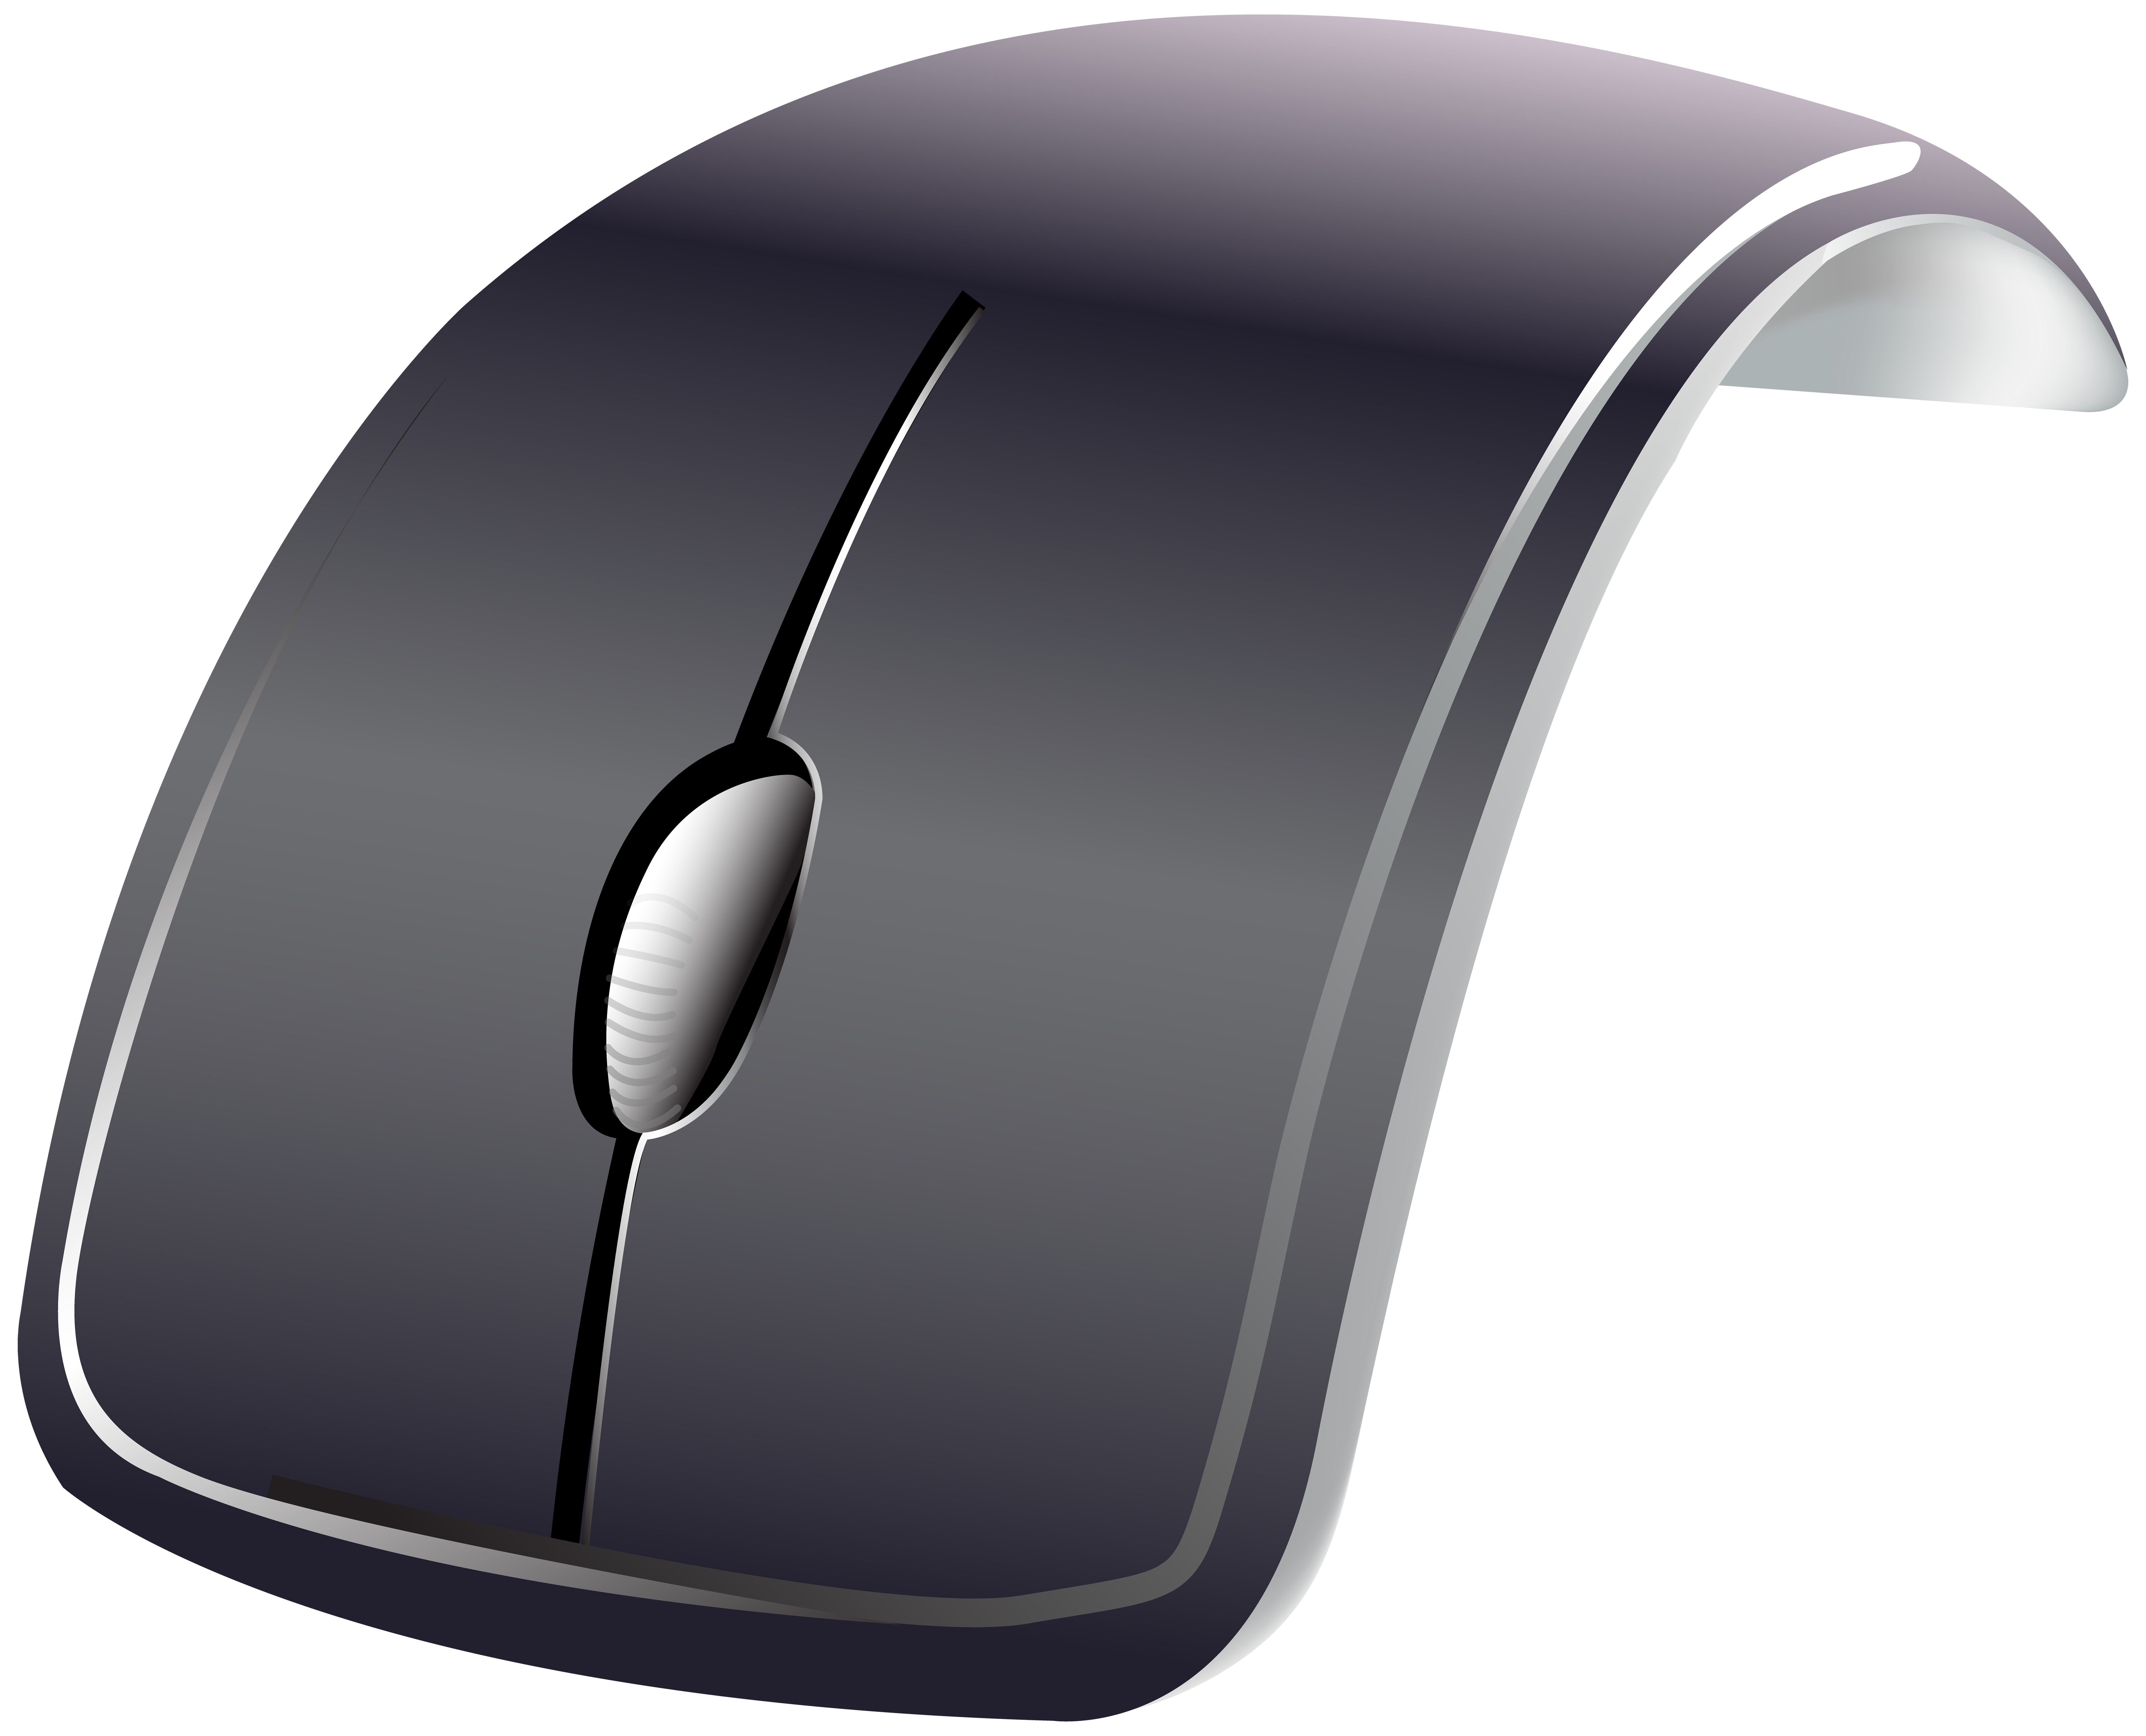 Pc mouse png. Clip art image gallery